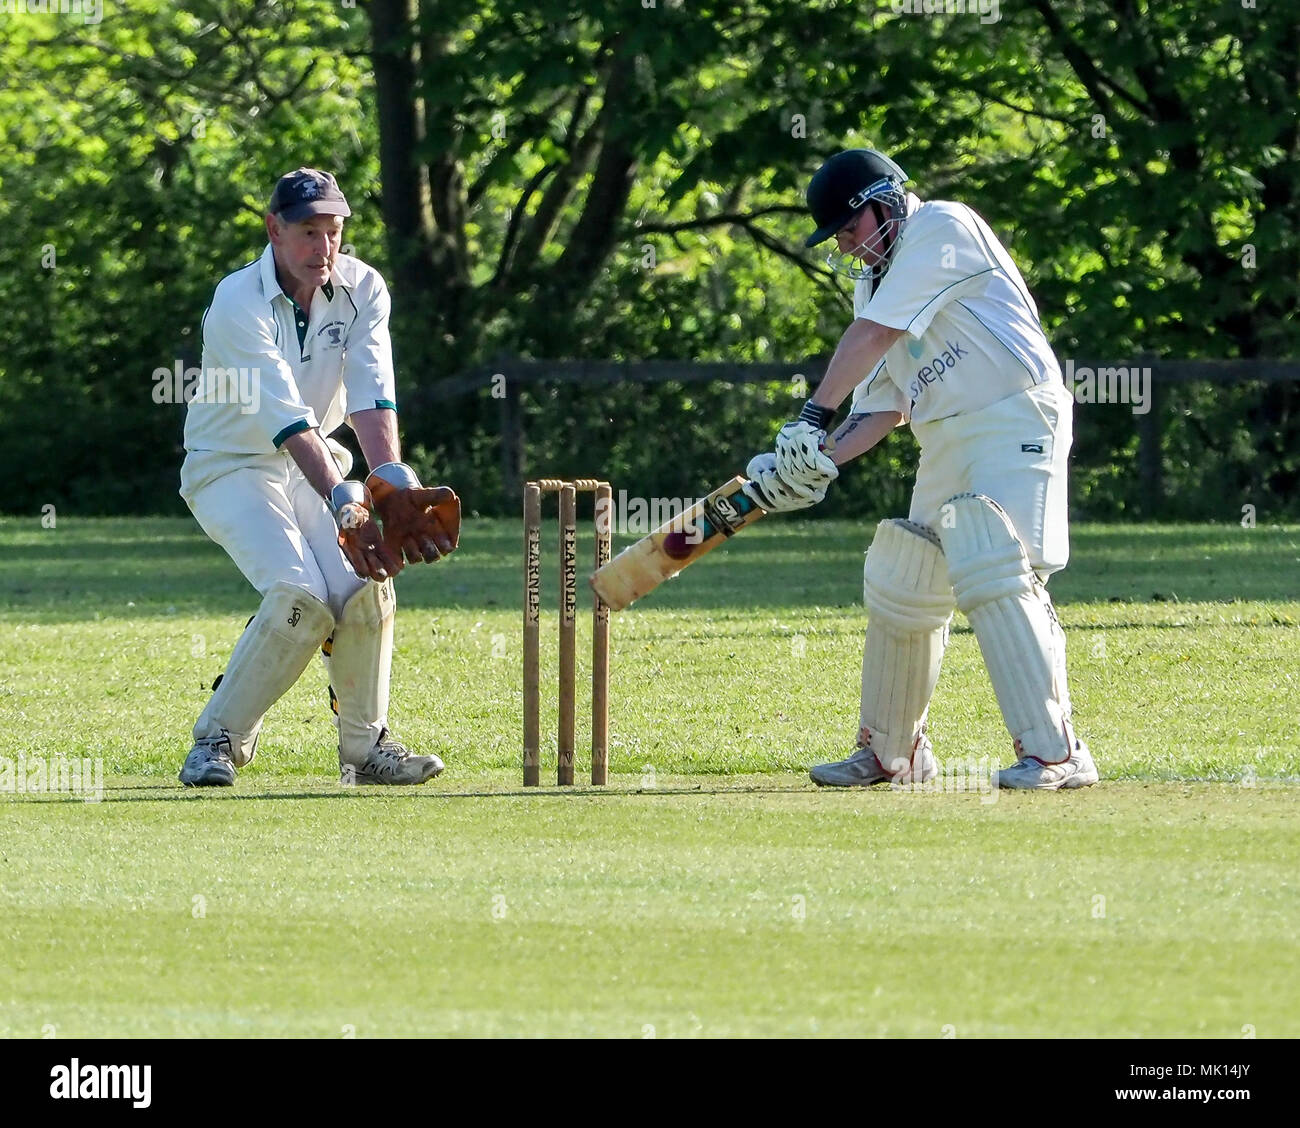 05.05.2018, Wymeswold, Leicestershire, England. Cricket Wymeswold CC 2nd v Hucknall 4ths in the South Notts Cricket League - Stock Image